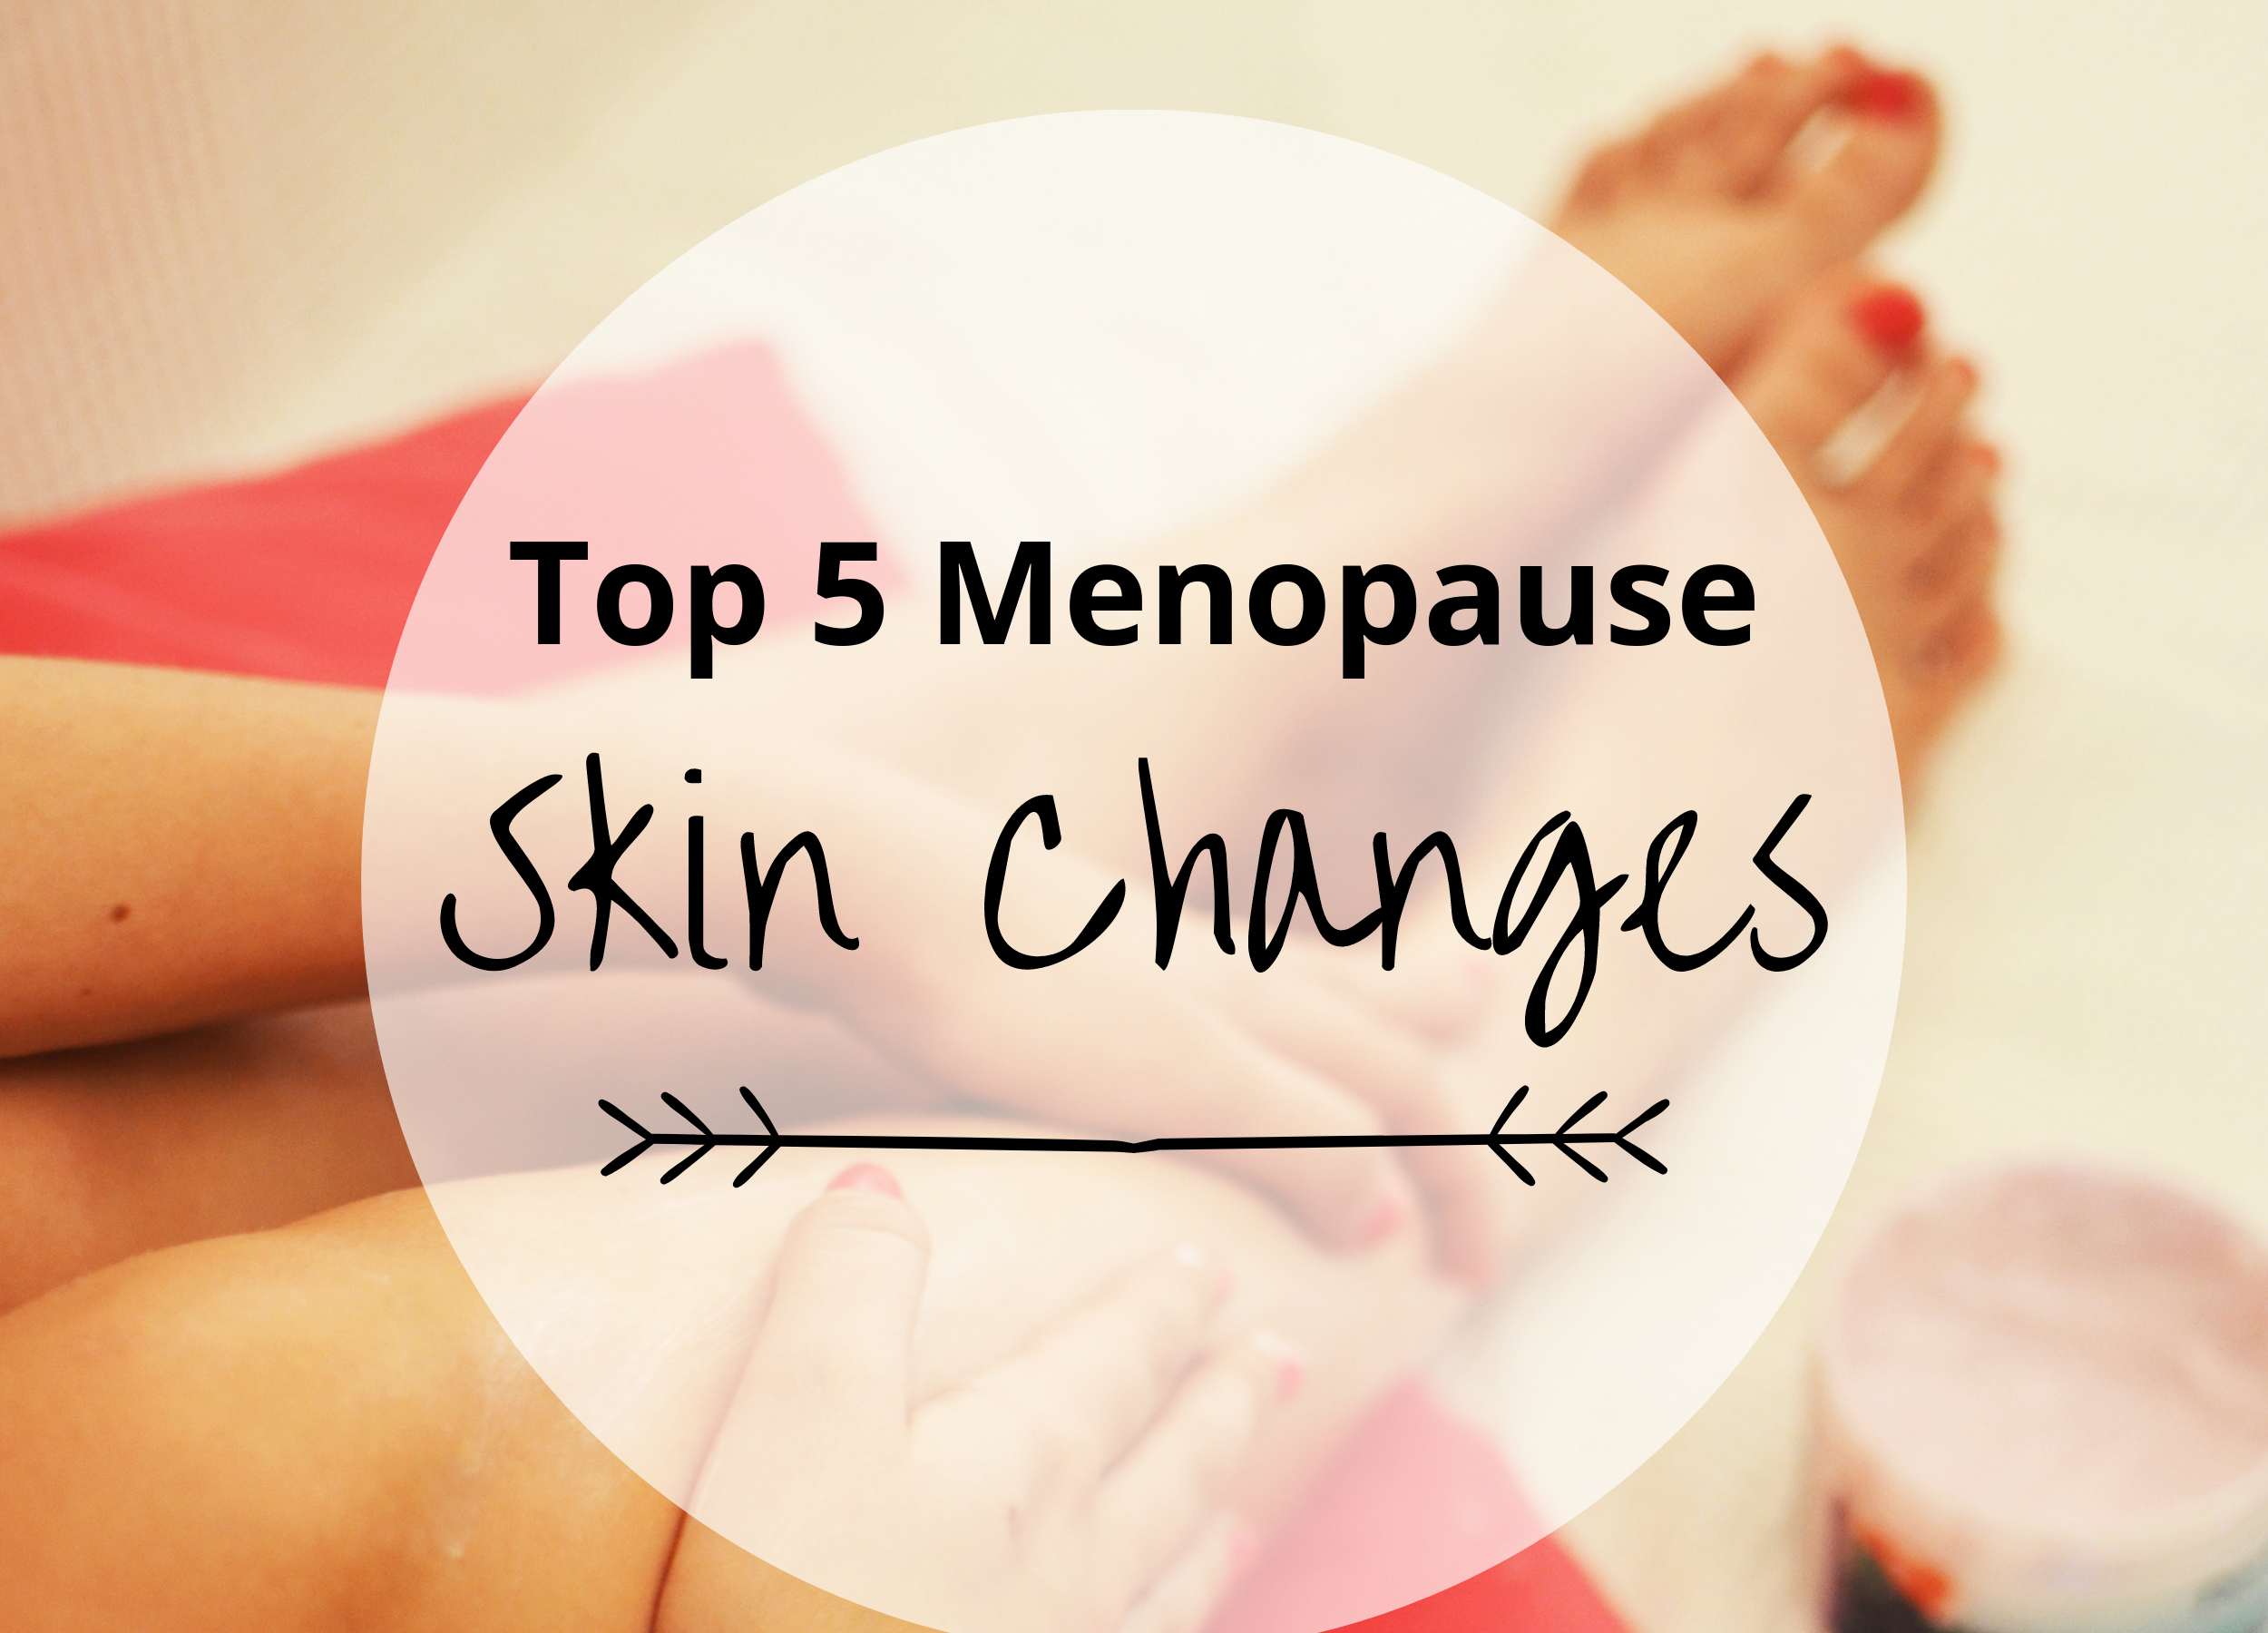 Top 5 Menopause Skin Changes (and how to reverse them)